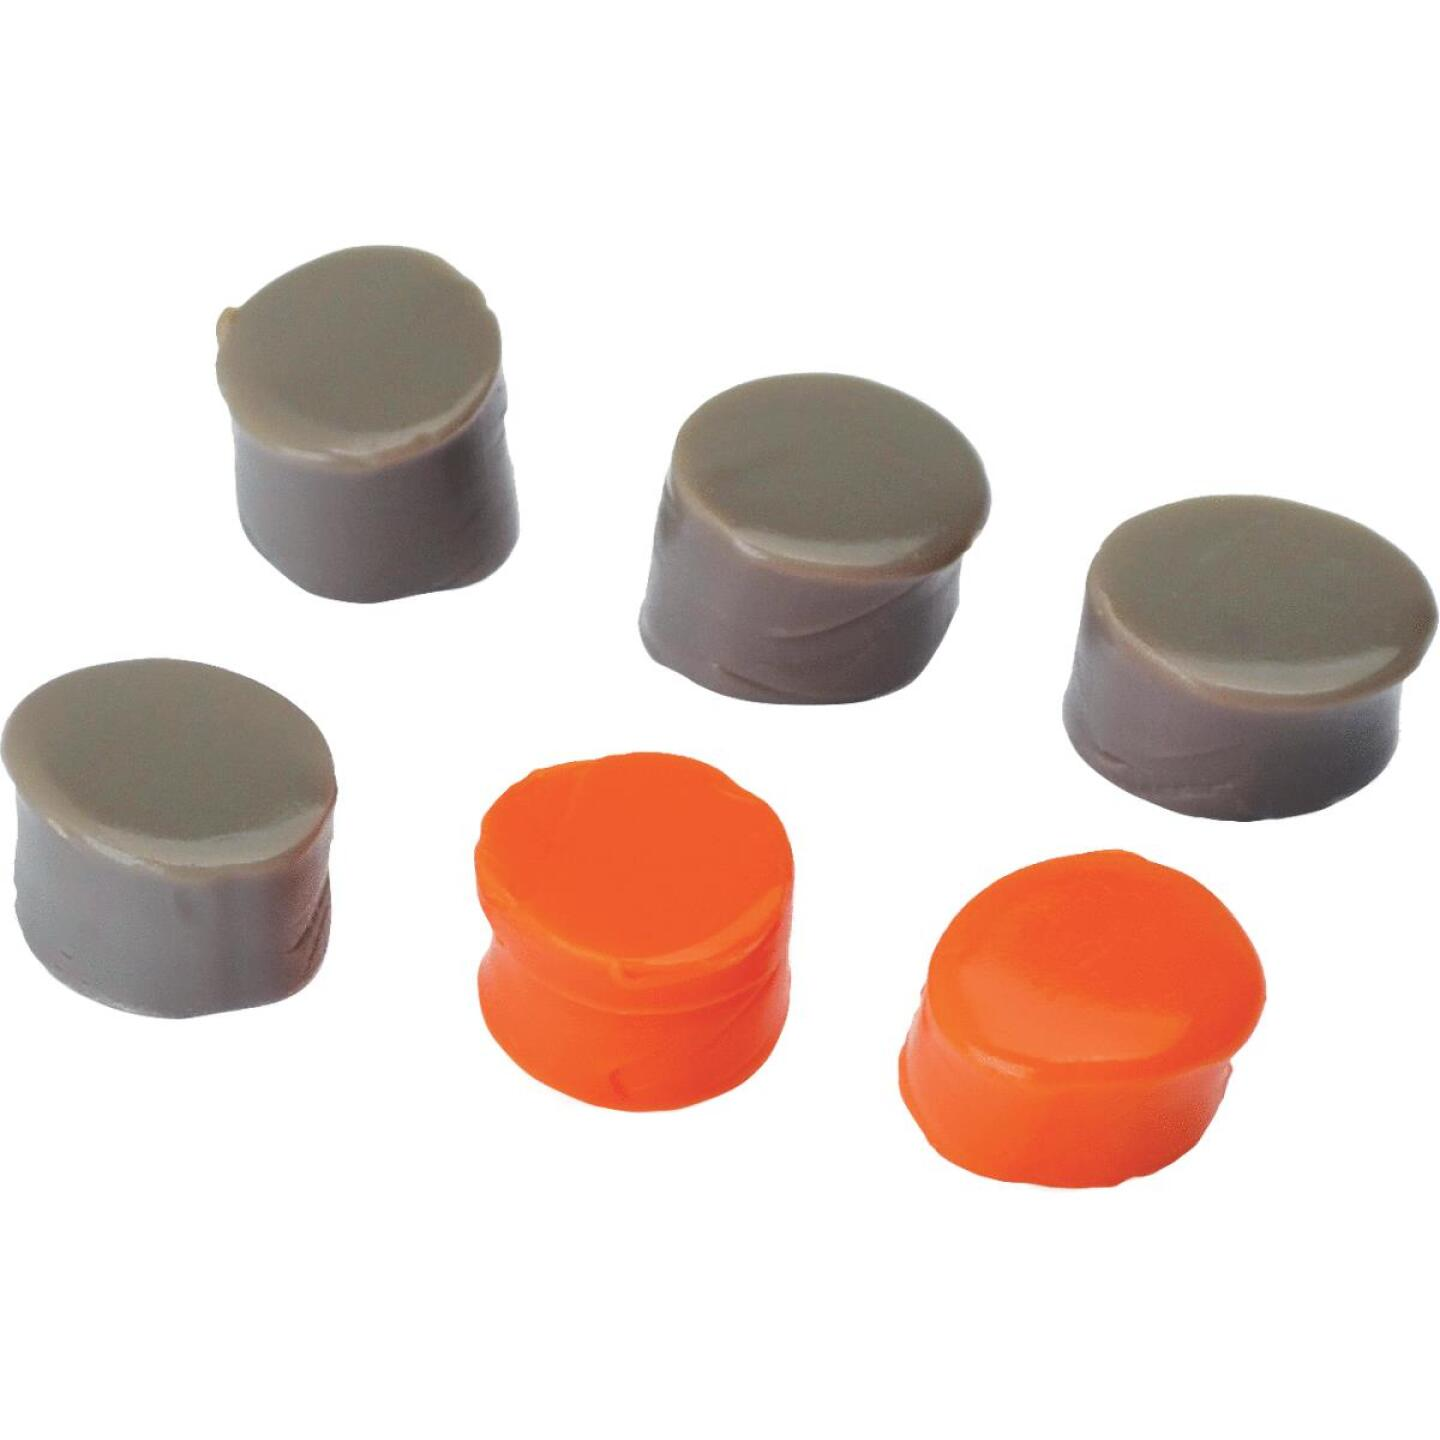 Walker's Silicone Putty Orange & Dark Earth Ear Plugs (3-Pair) Image 2